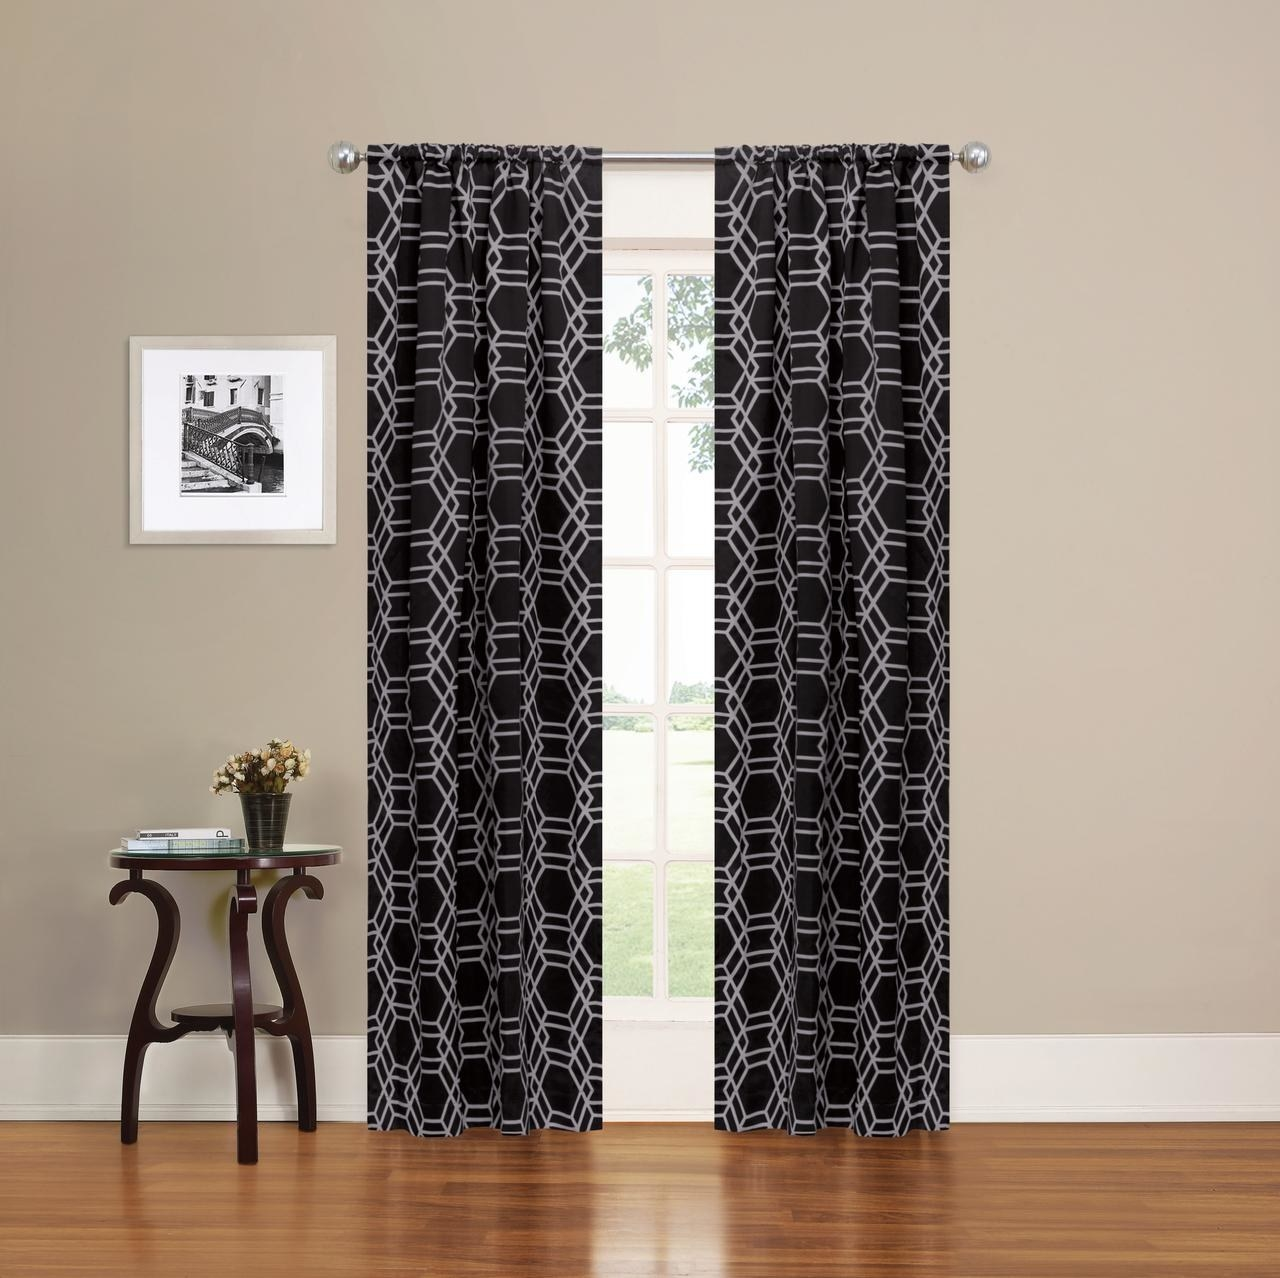 The black and white geometric print curtains